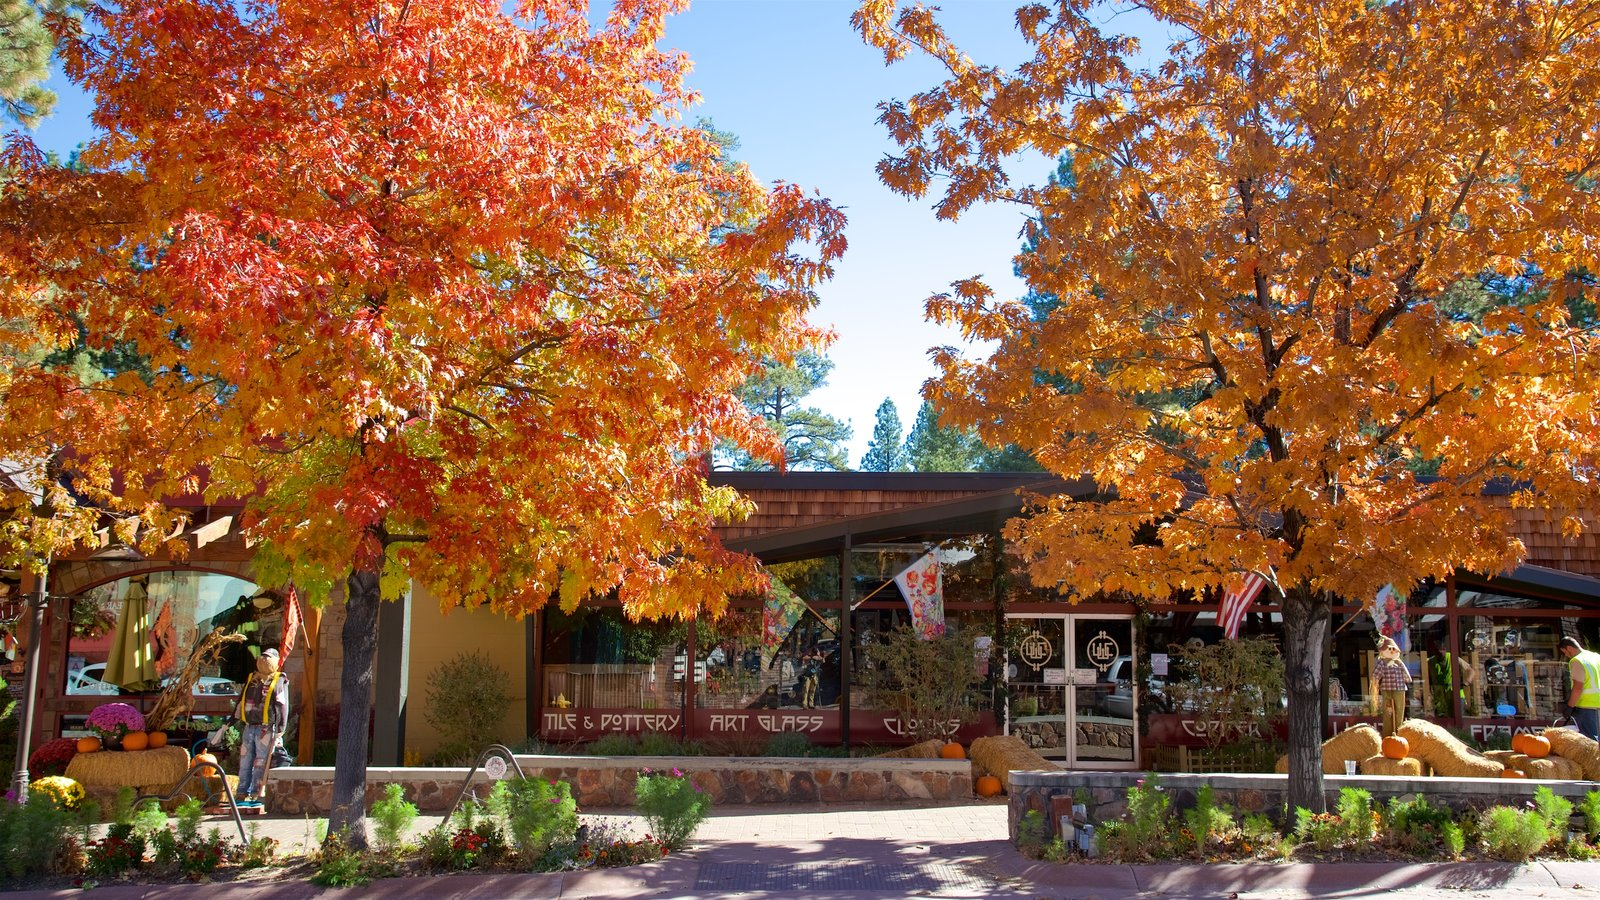 big bear lake personals Chad's place is the entertainment hot spot for people visiting this area after a day on the lake or on the slopes come to chad's to dance the night away to live rock and roll, shoot some pool, play darts or talk with the bartenders.